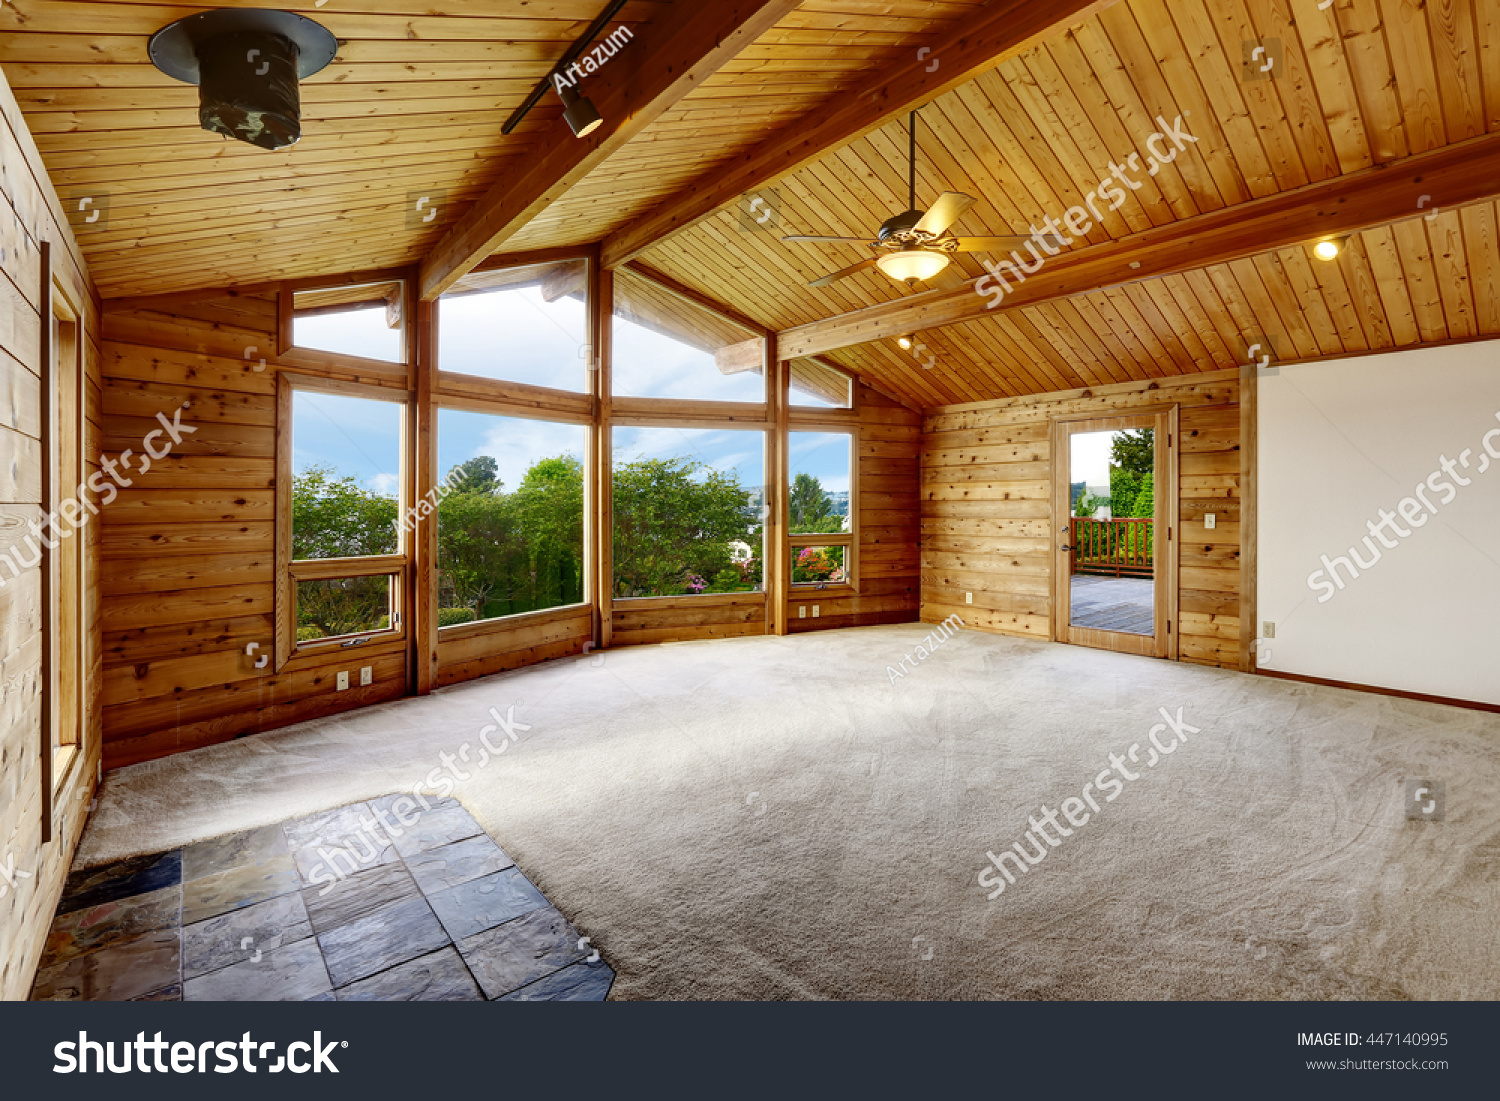 Empty living room with carpet - Empty Living Room With Carpet Floor In Wooden Trim House With Large Windows And Balcony Door